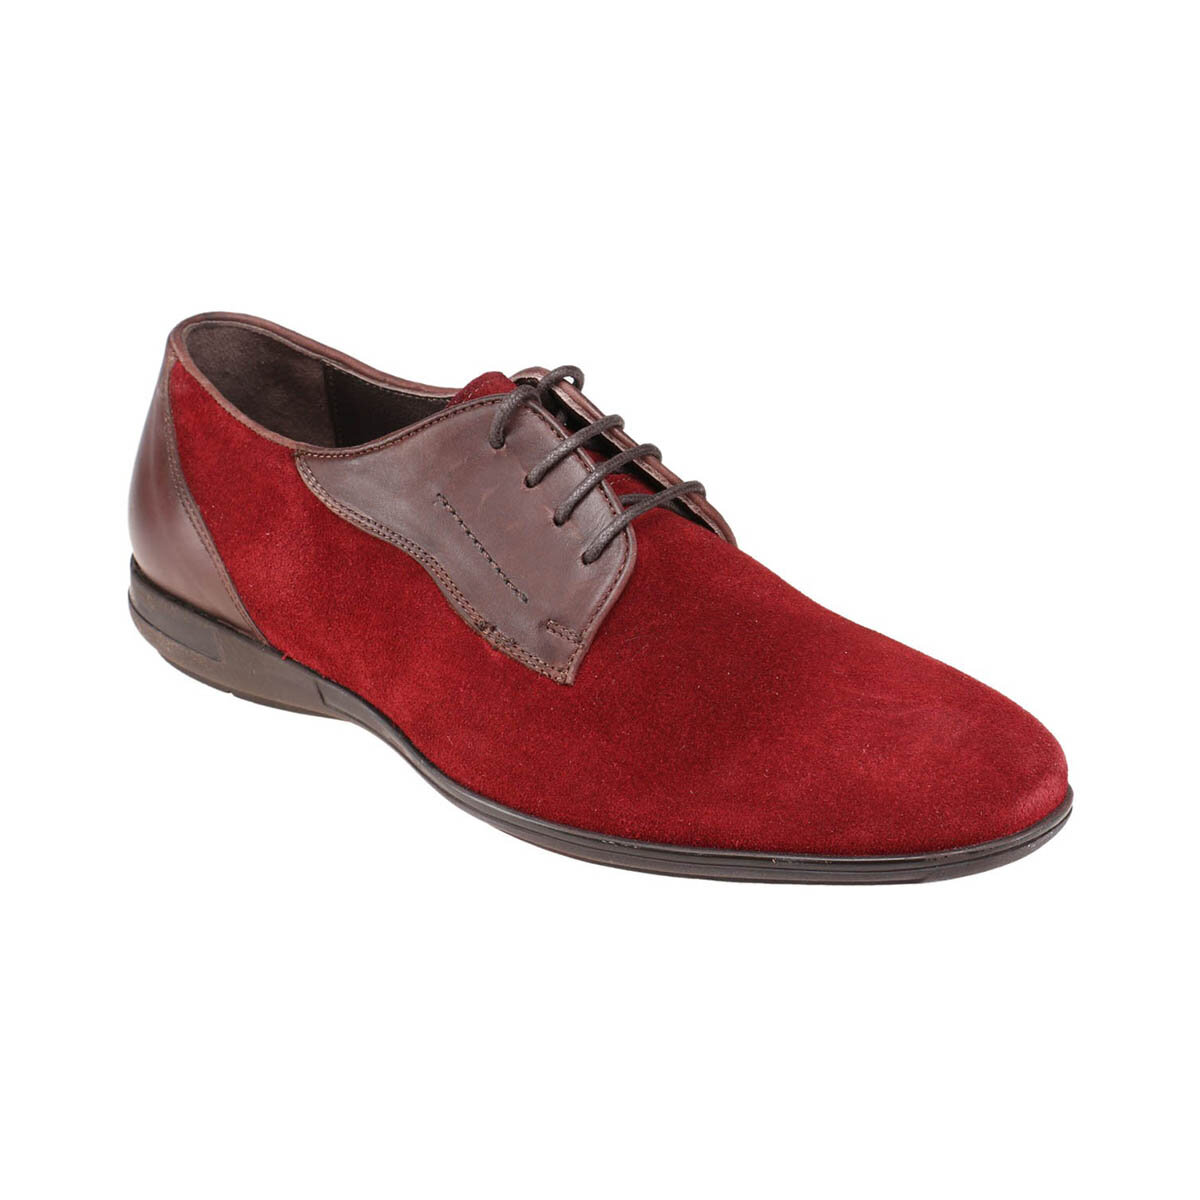 FLO KL-59123-2 M 1506 Burgundy Men 'S Classic Shoes JJ-Stiller